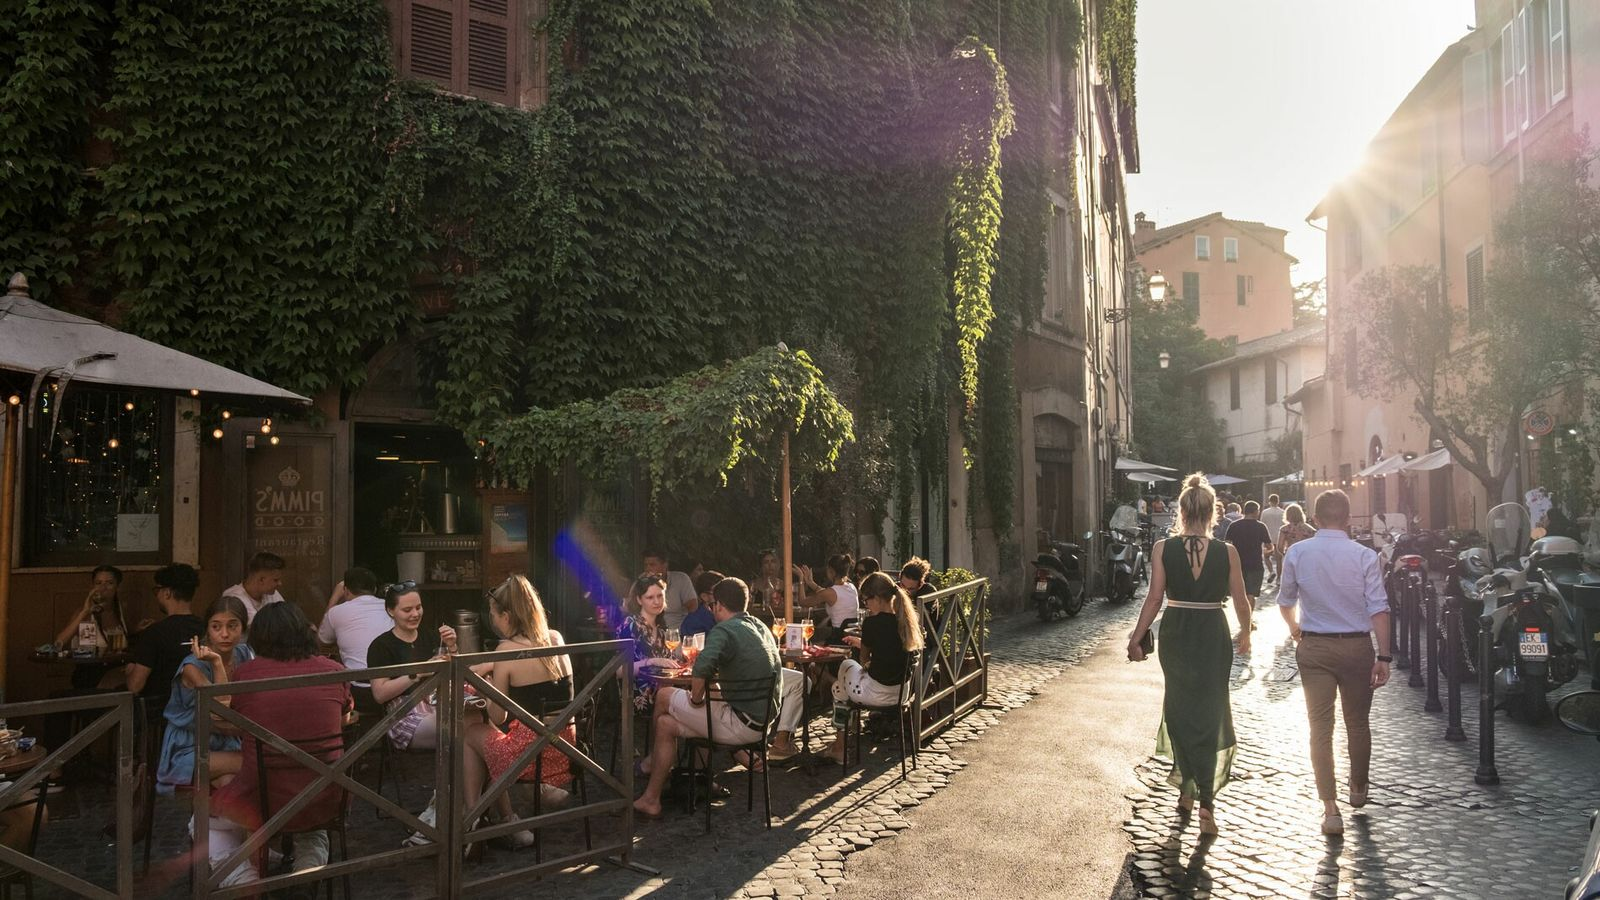 There's a strong hum of la dolce vita in Trastevere. Alleyways zigzag their way through the ...